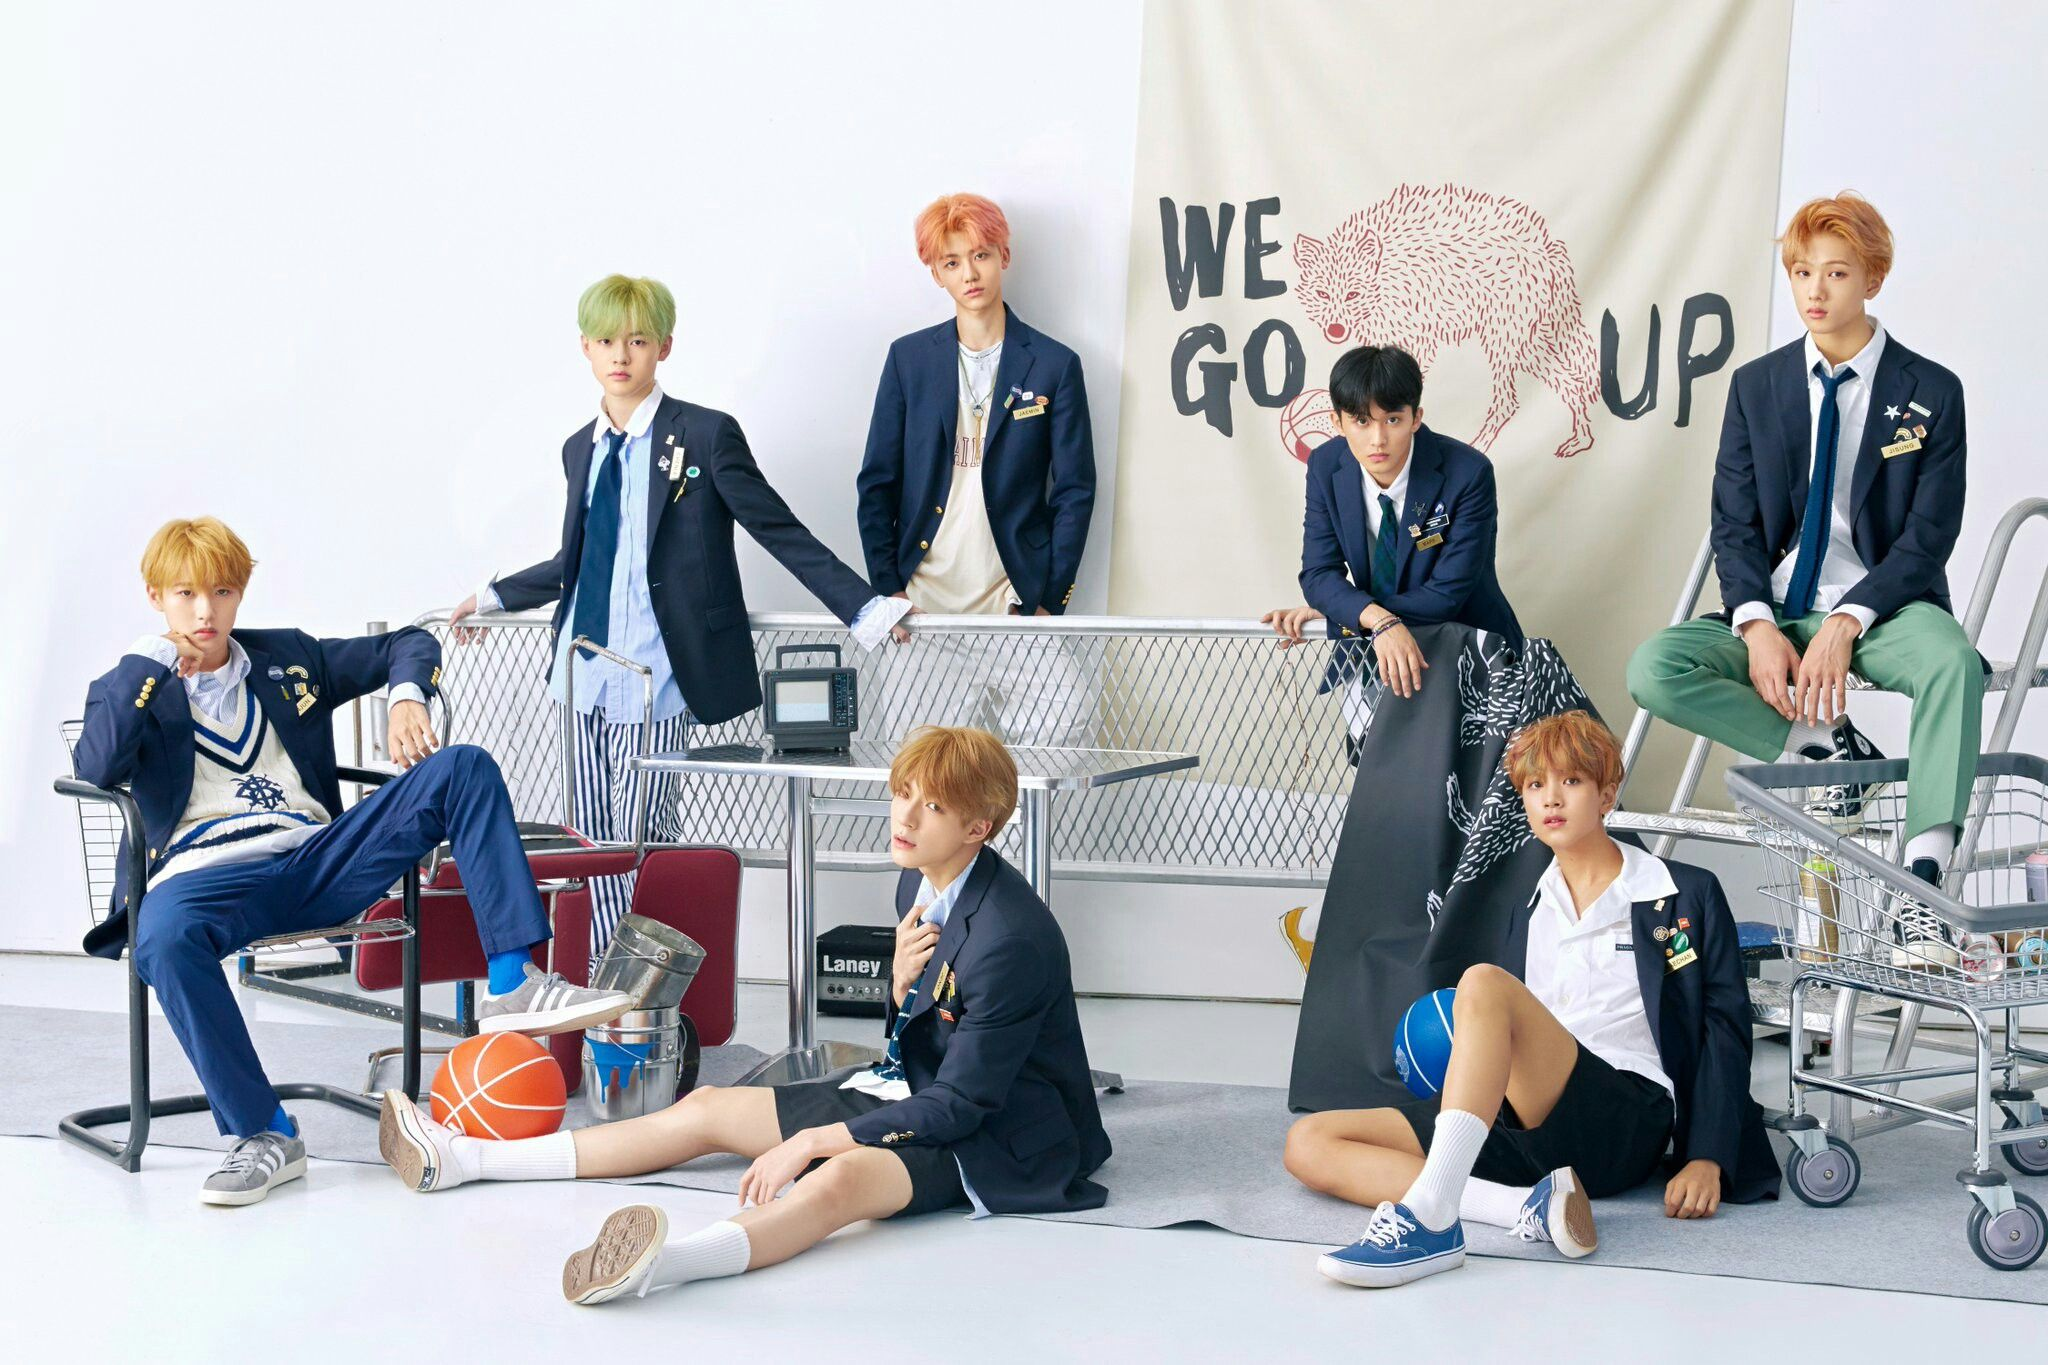 Nct Dream Wegoup Mv 8 25pm Music Video Today 8 25pm Kst Music Release 2018 09 03 6 00pm Kst Nctdream Nctdream Wegoup Wegoup Nct Xiao Percintaan